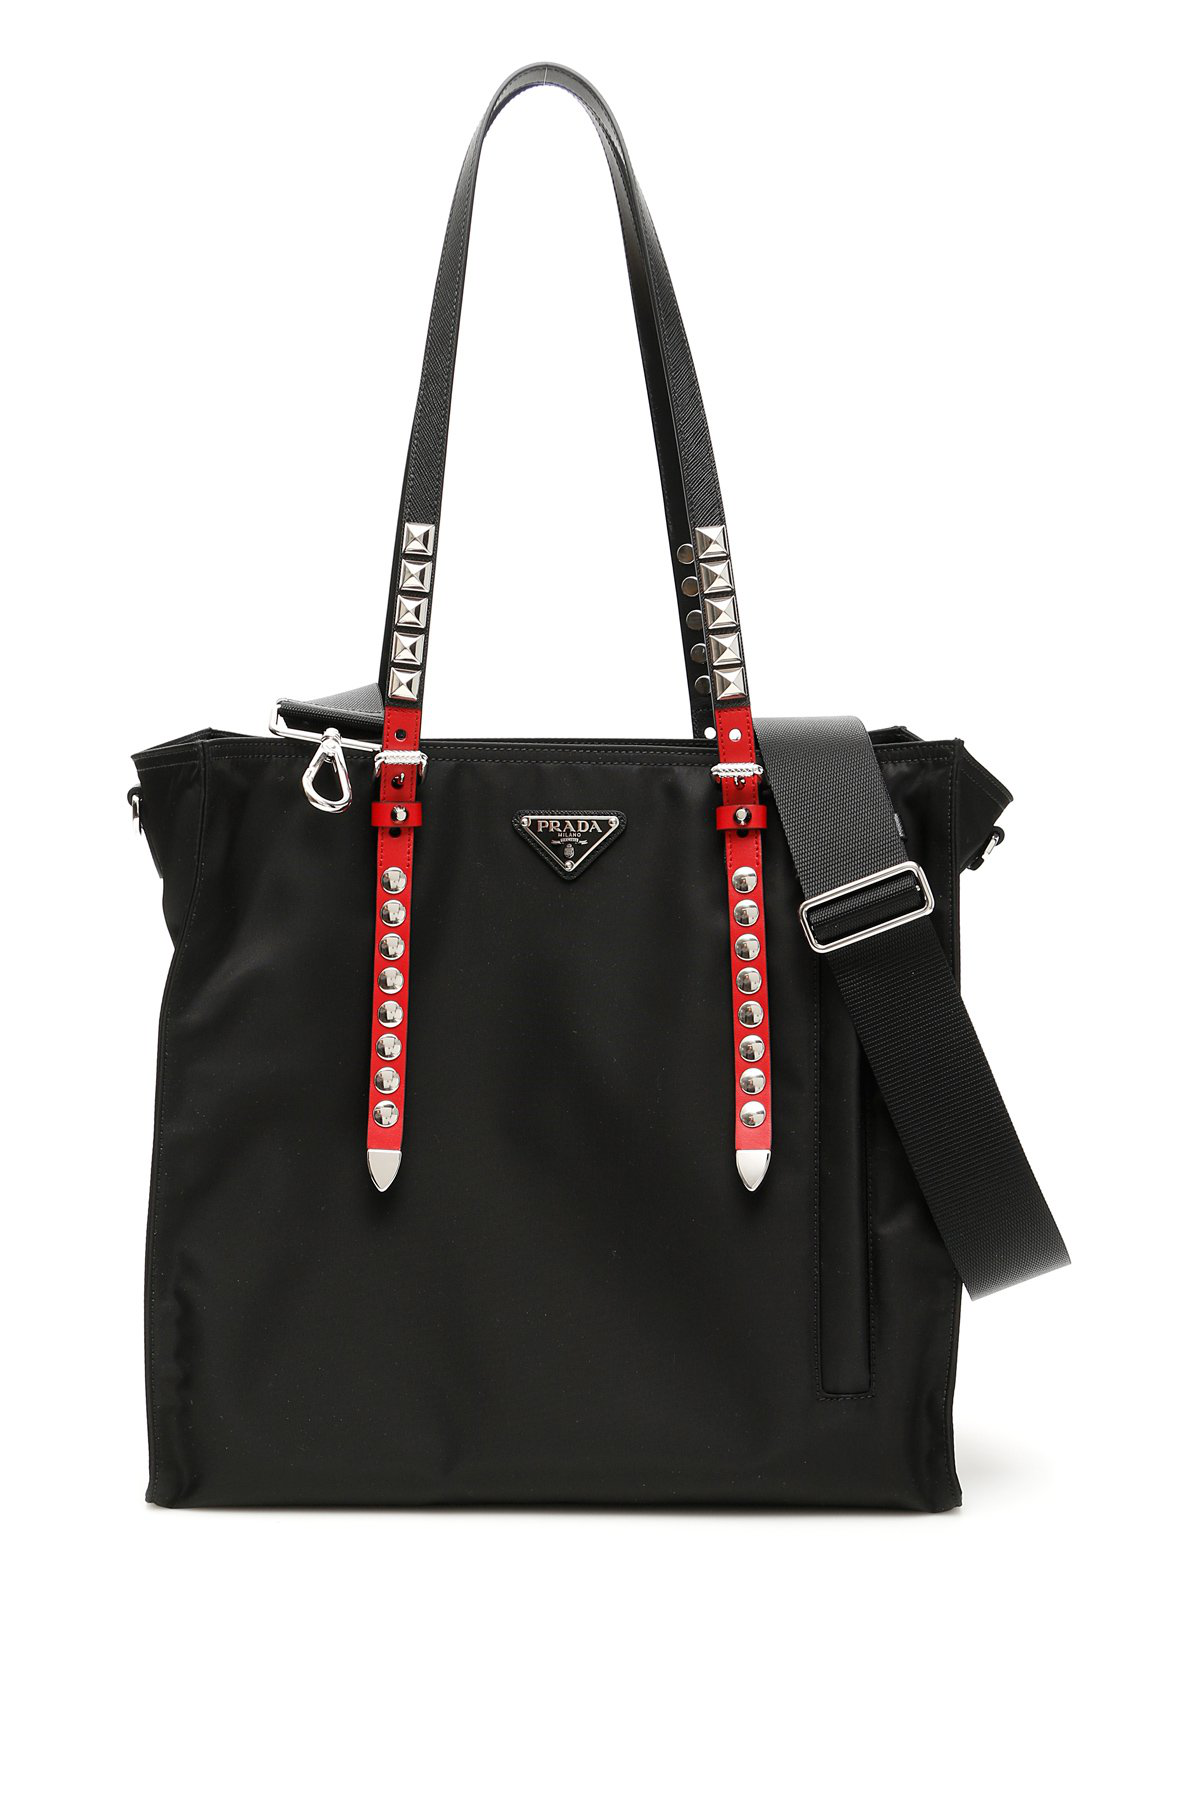 61437df228ad Prada Logo Studded Tote Bag In Black